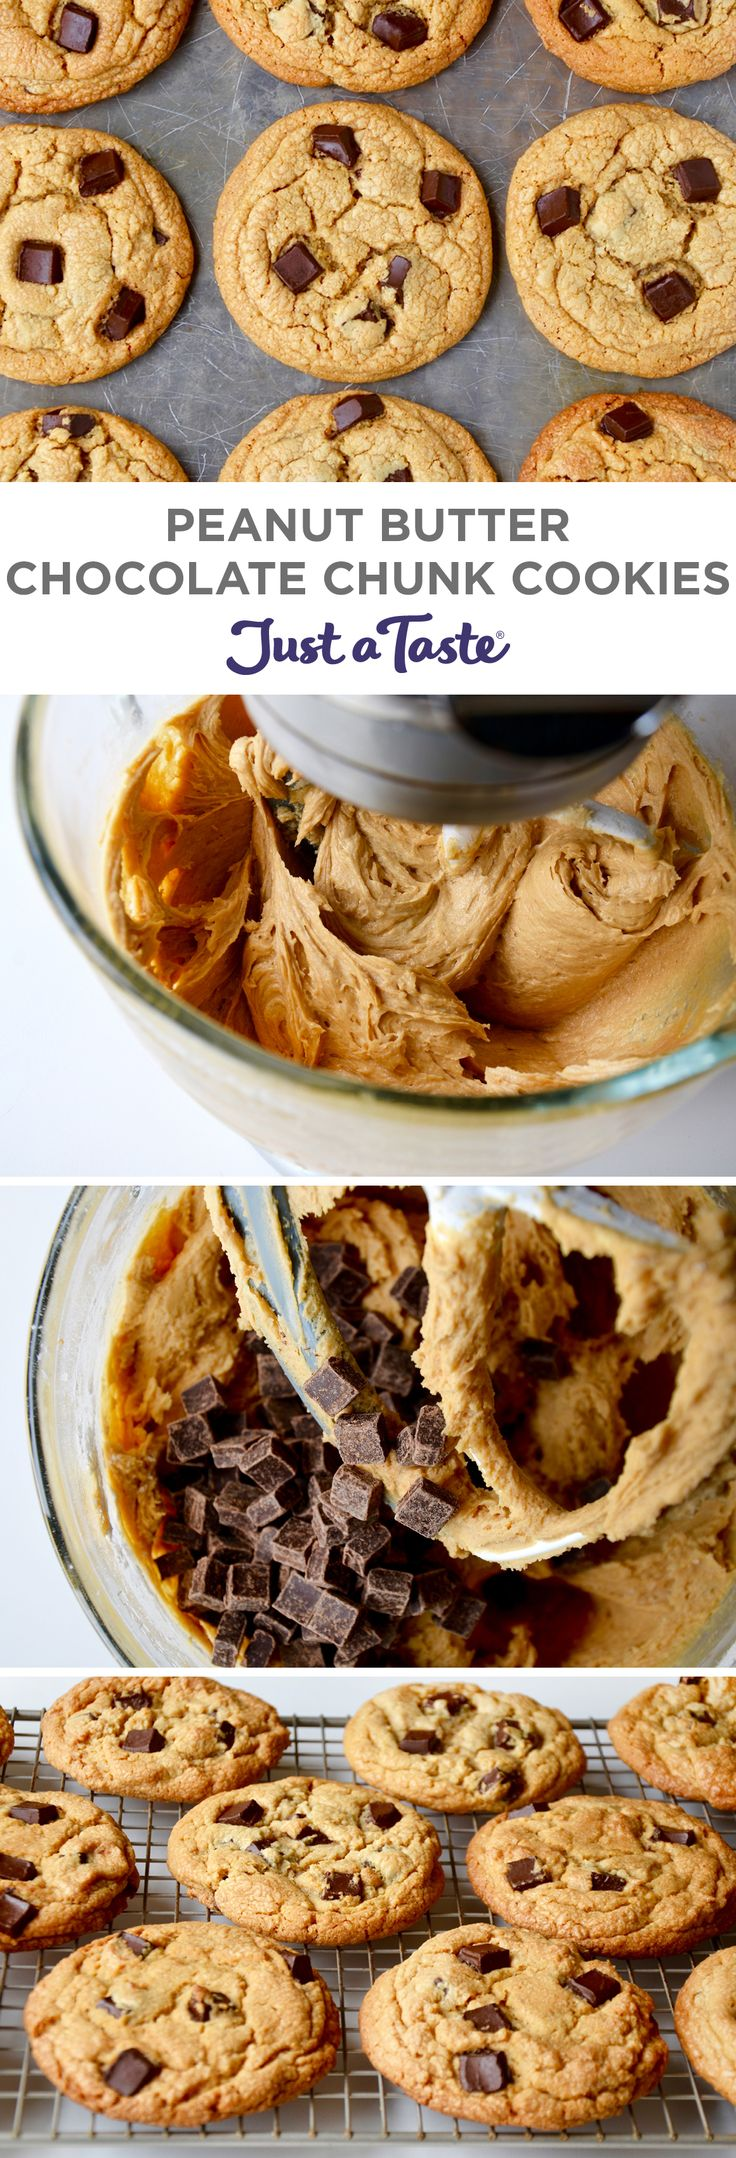 Peanut Butter Chocolate Chunk Cookies #recipe from justataste.com